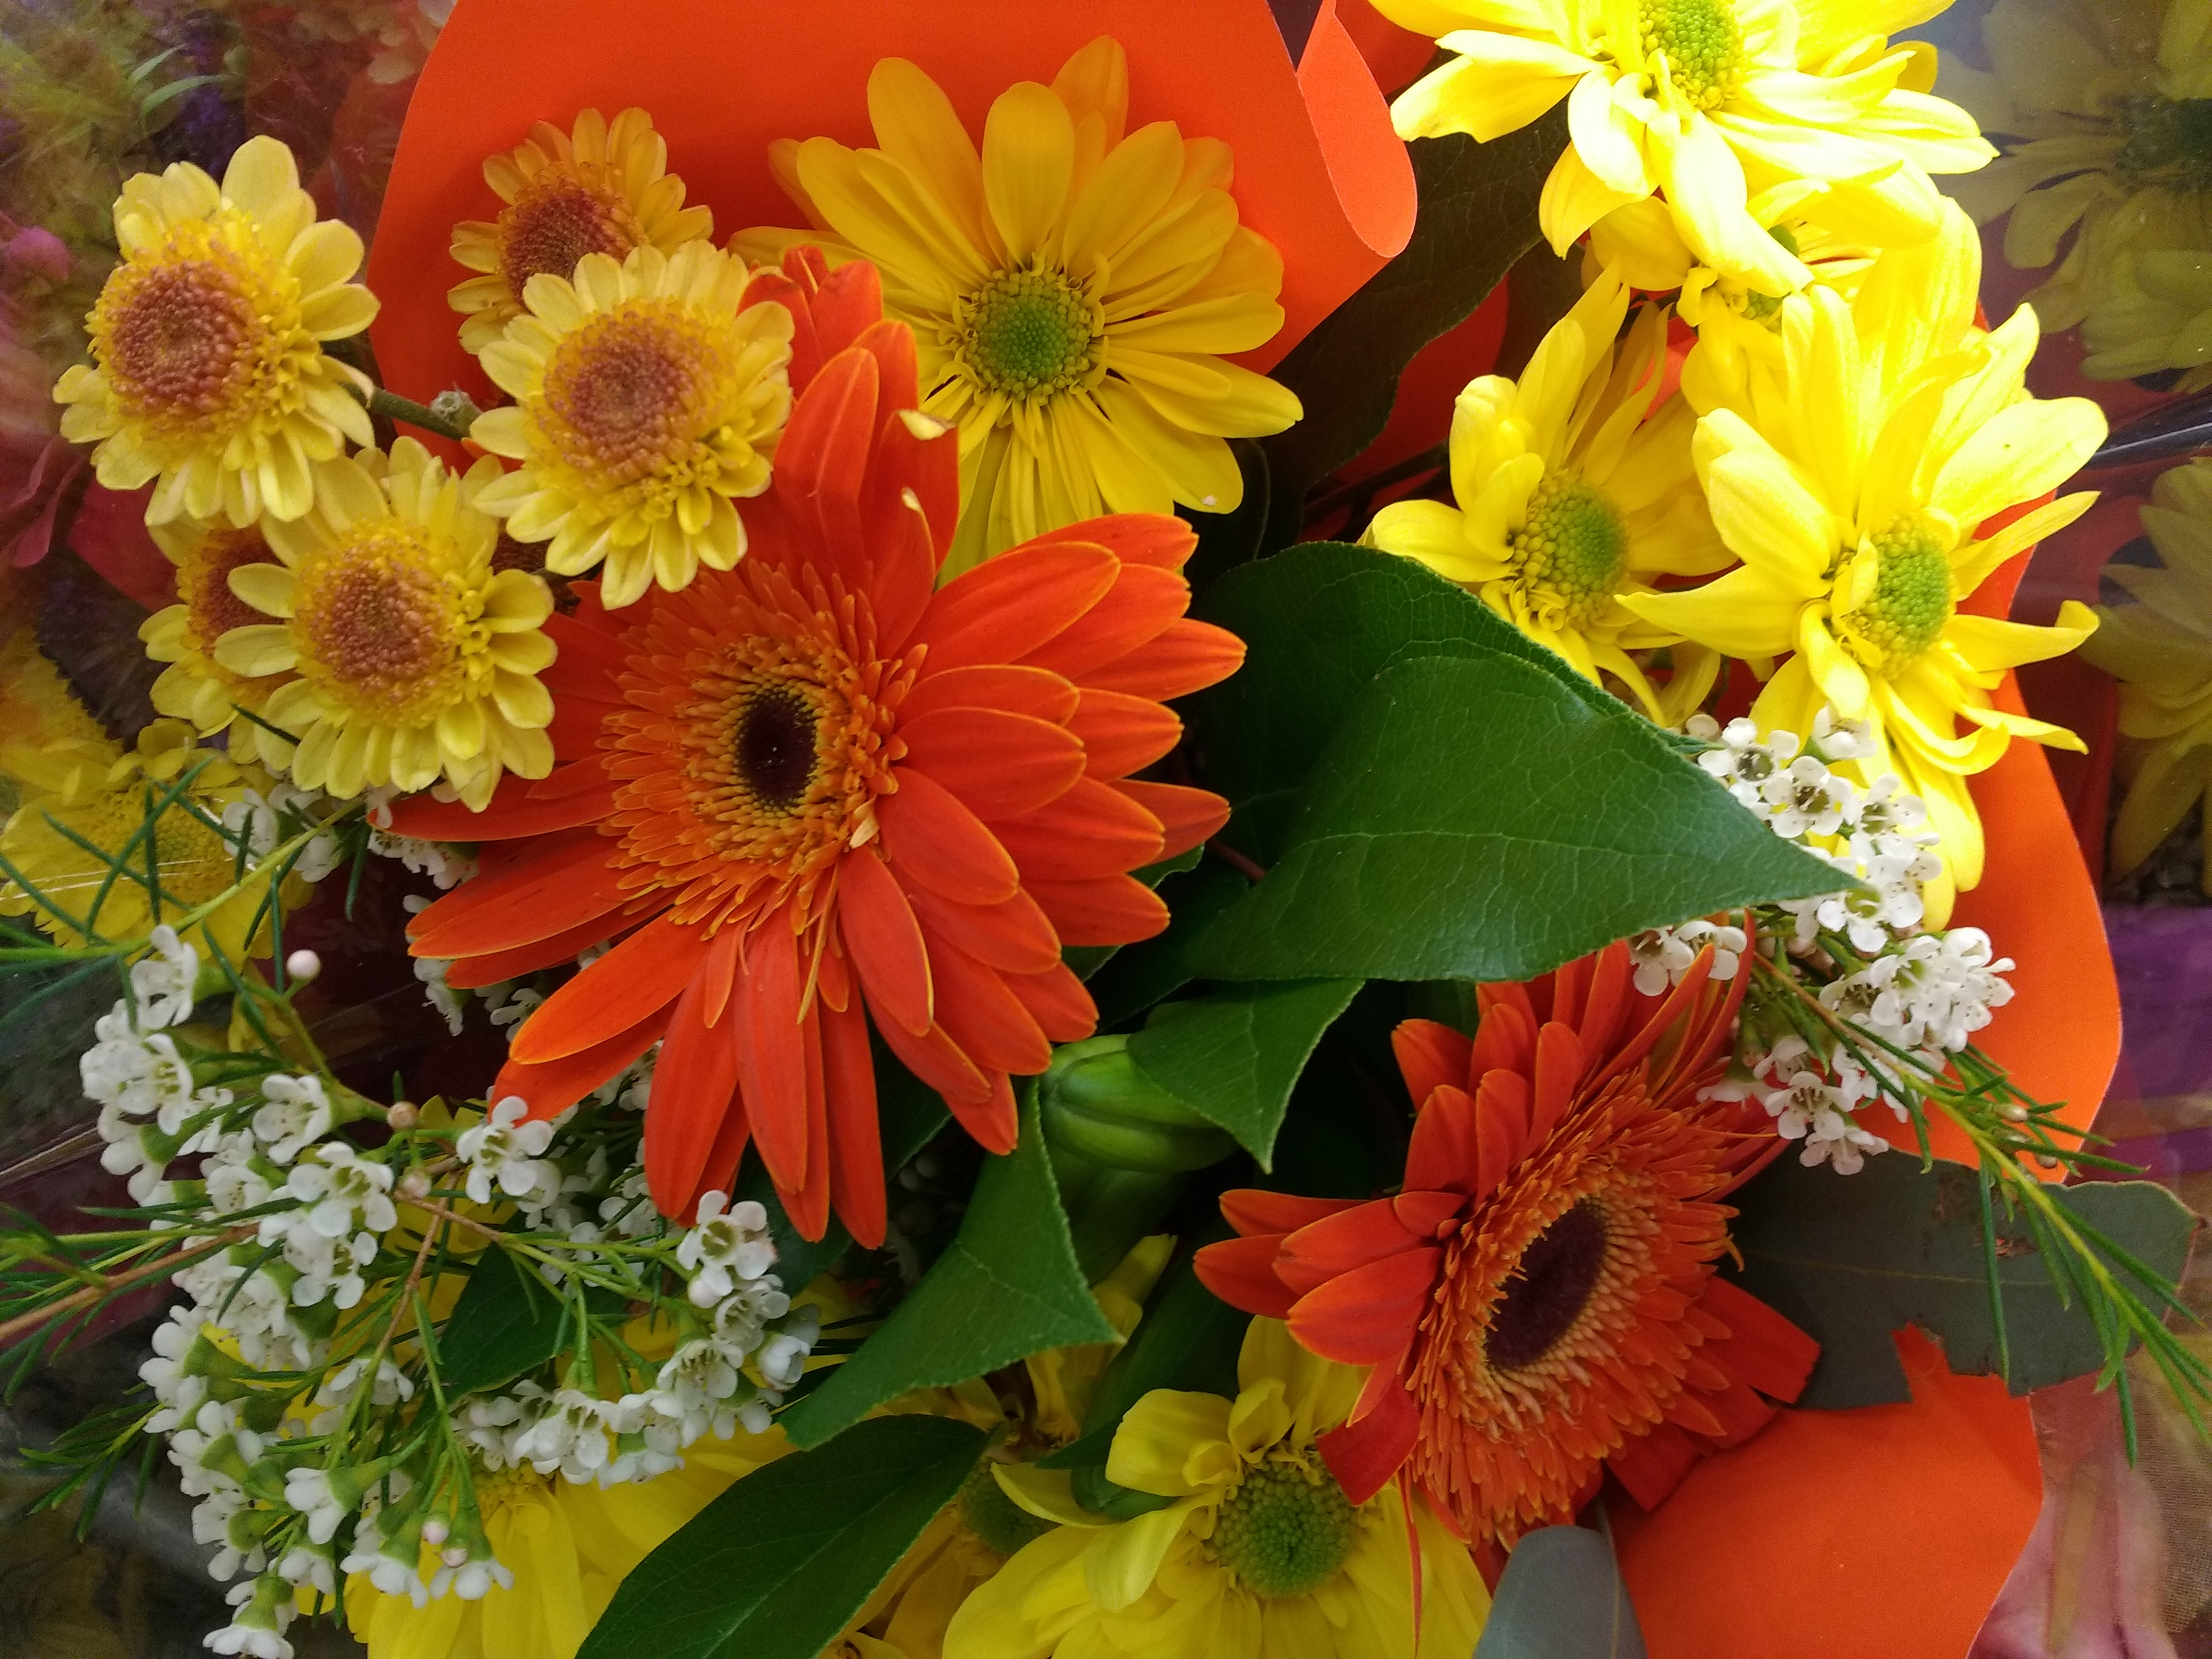 Orange and Yellow Flowers Bouquet Close Up Picture | Free Photograph ...